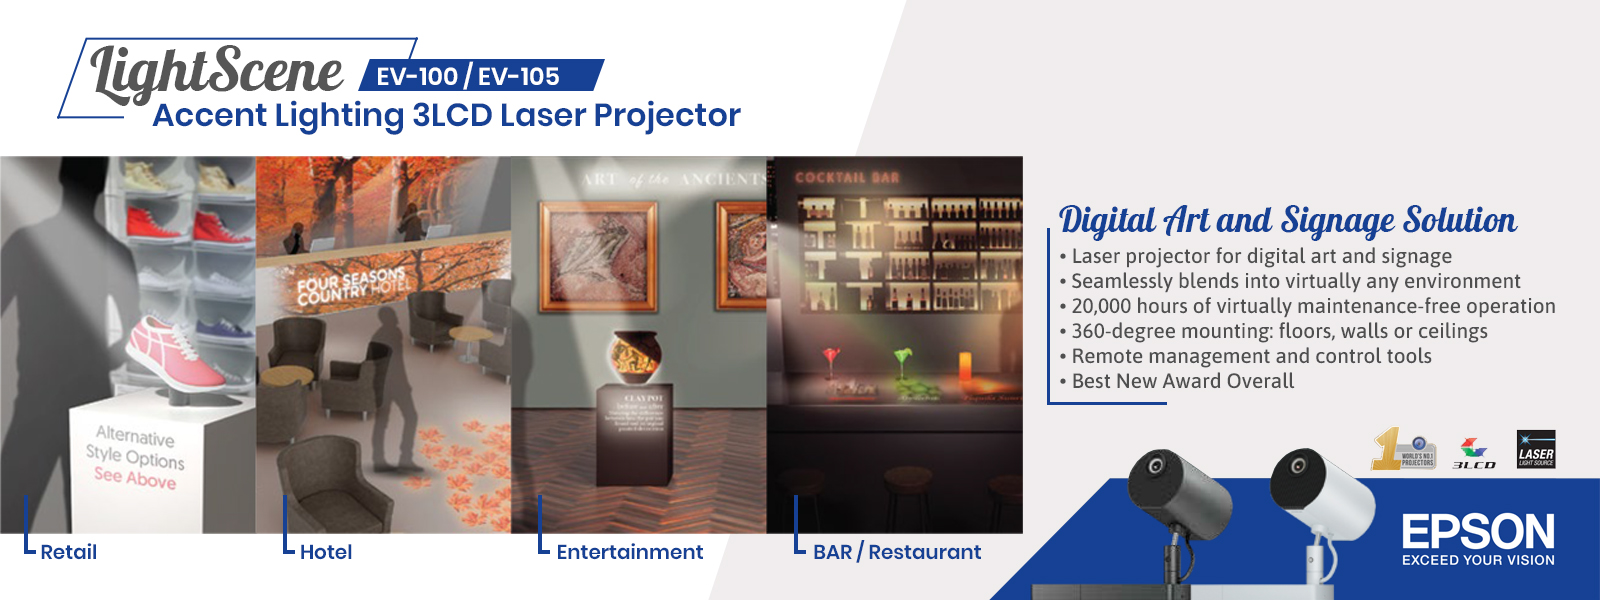 epson lightscene accent lighting 3lcd laser projector